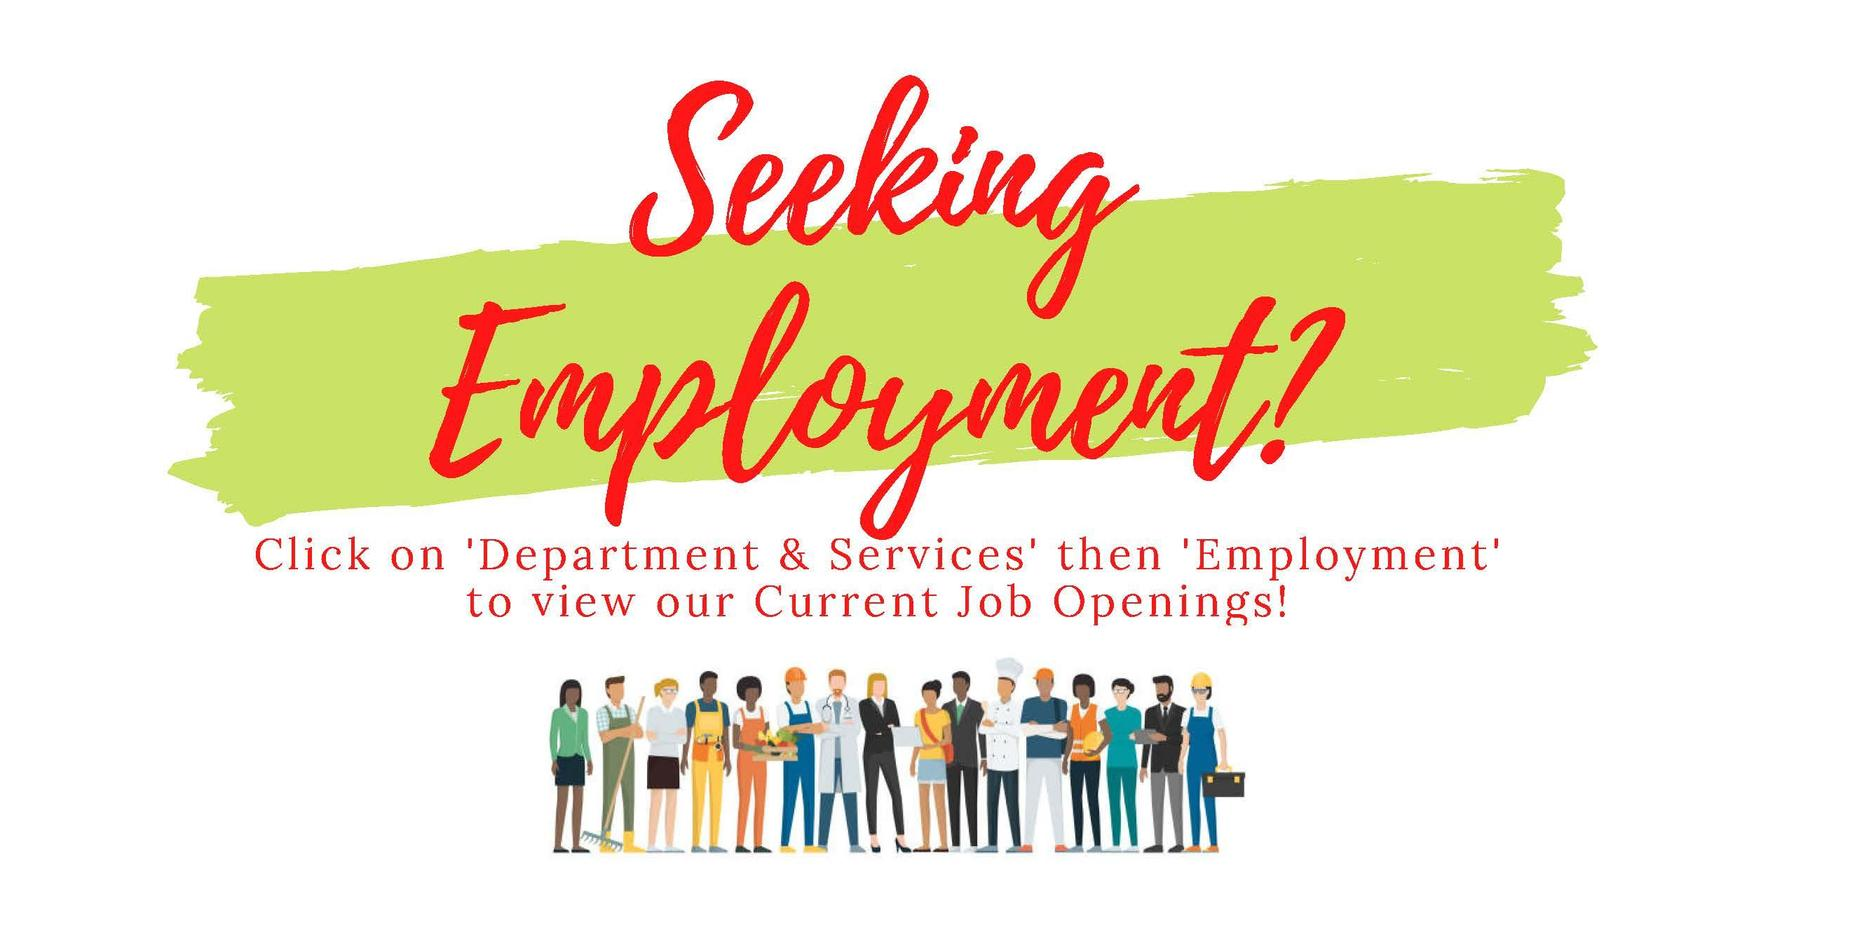 Employment opportunity notice